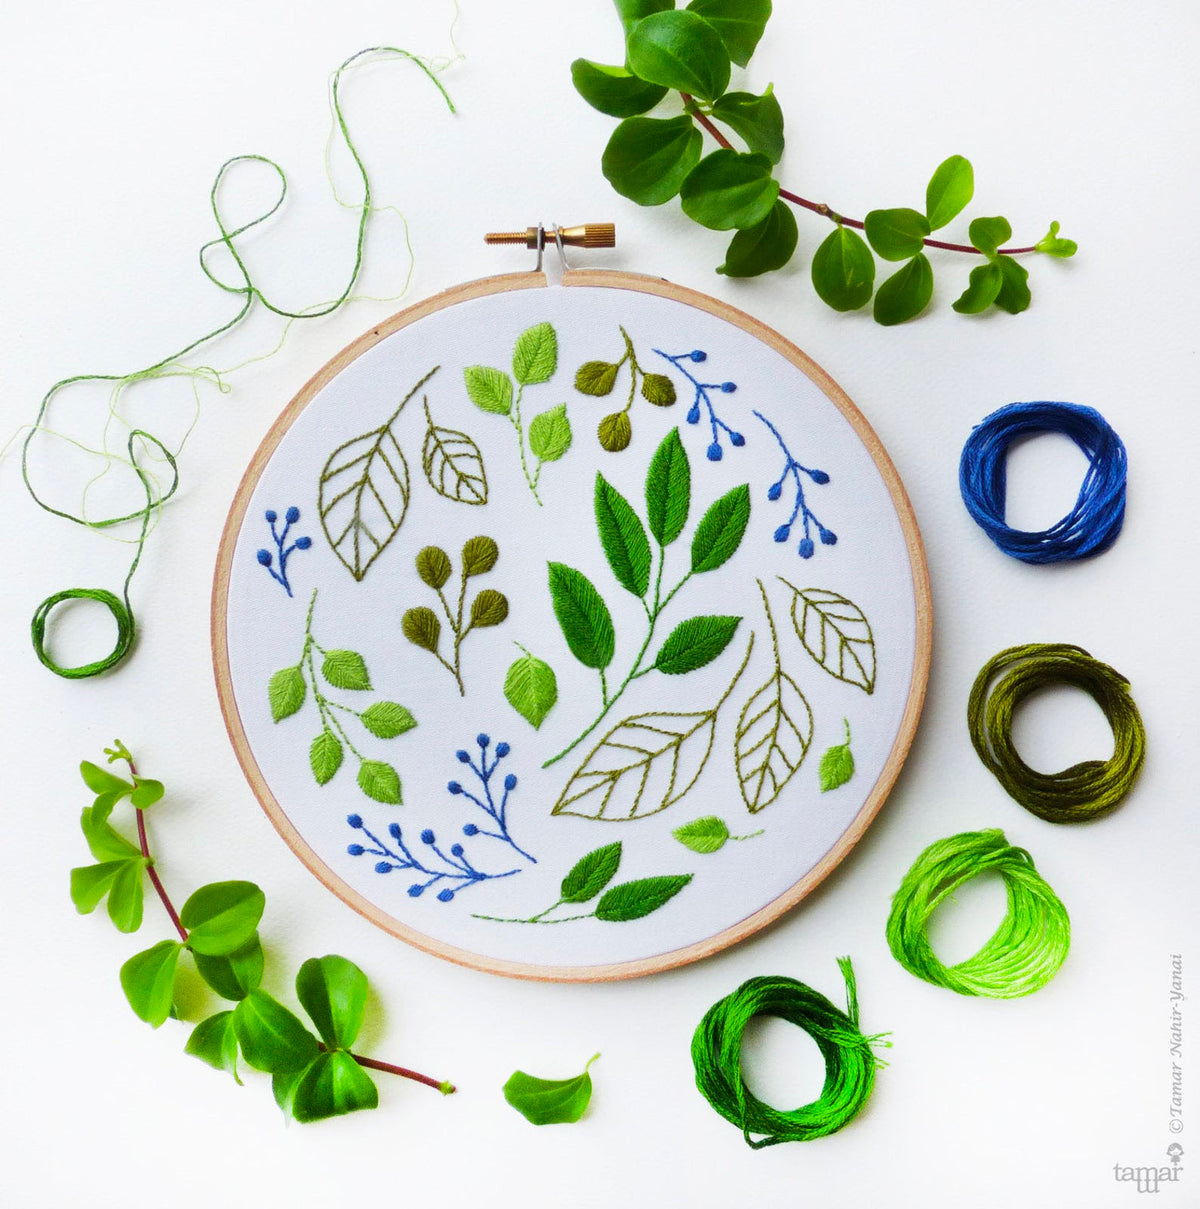 Windy Leaves Hand Embroidery Kit